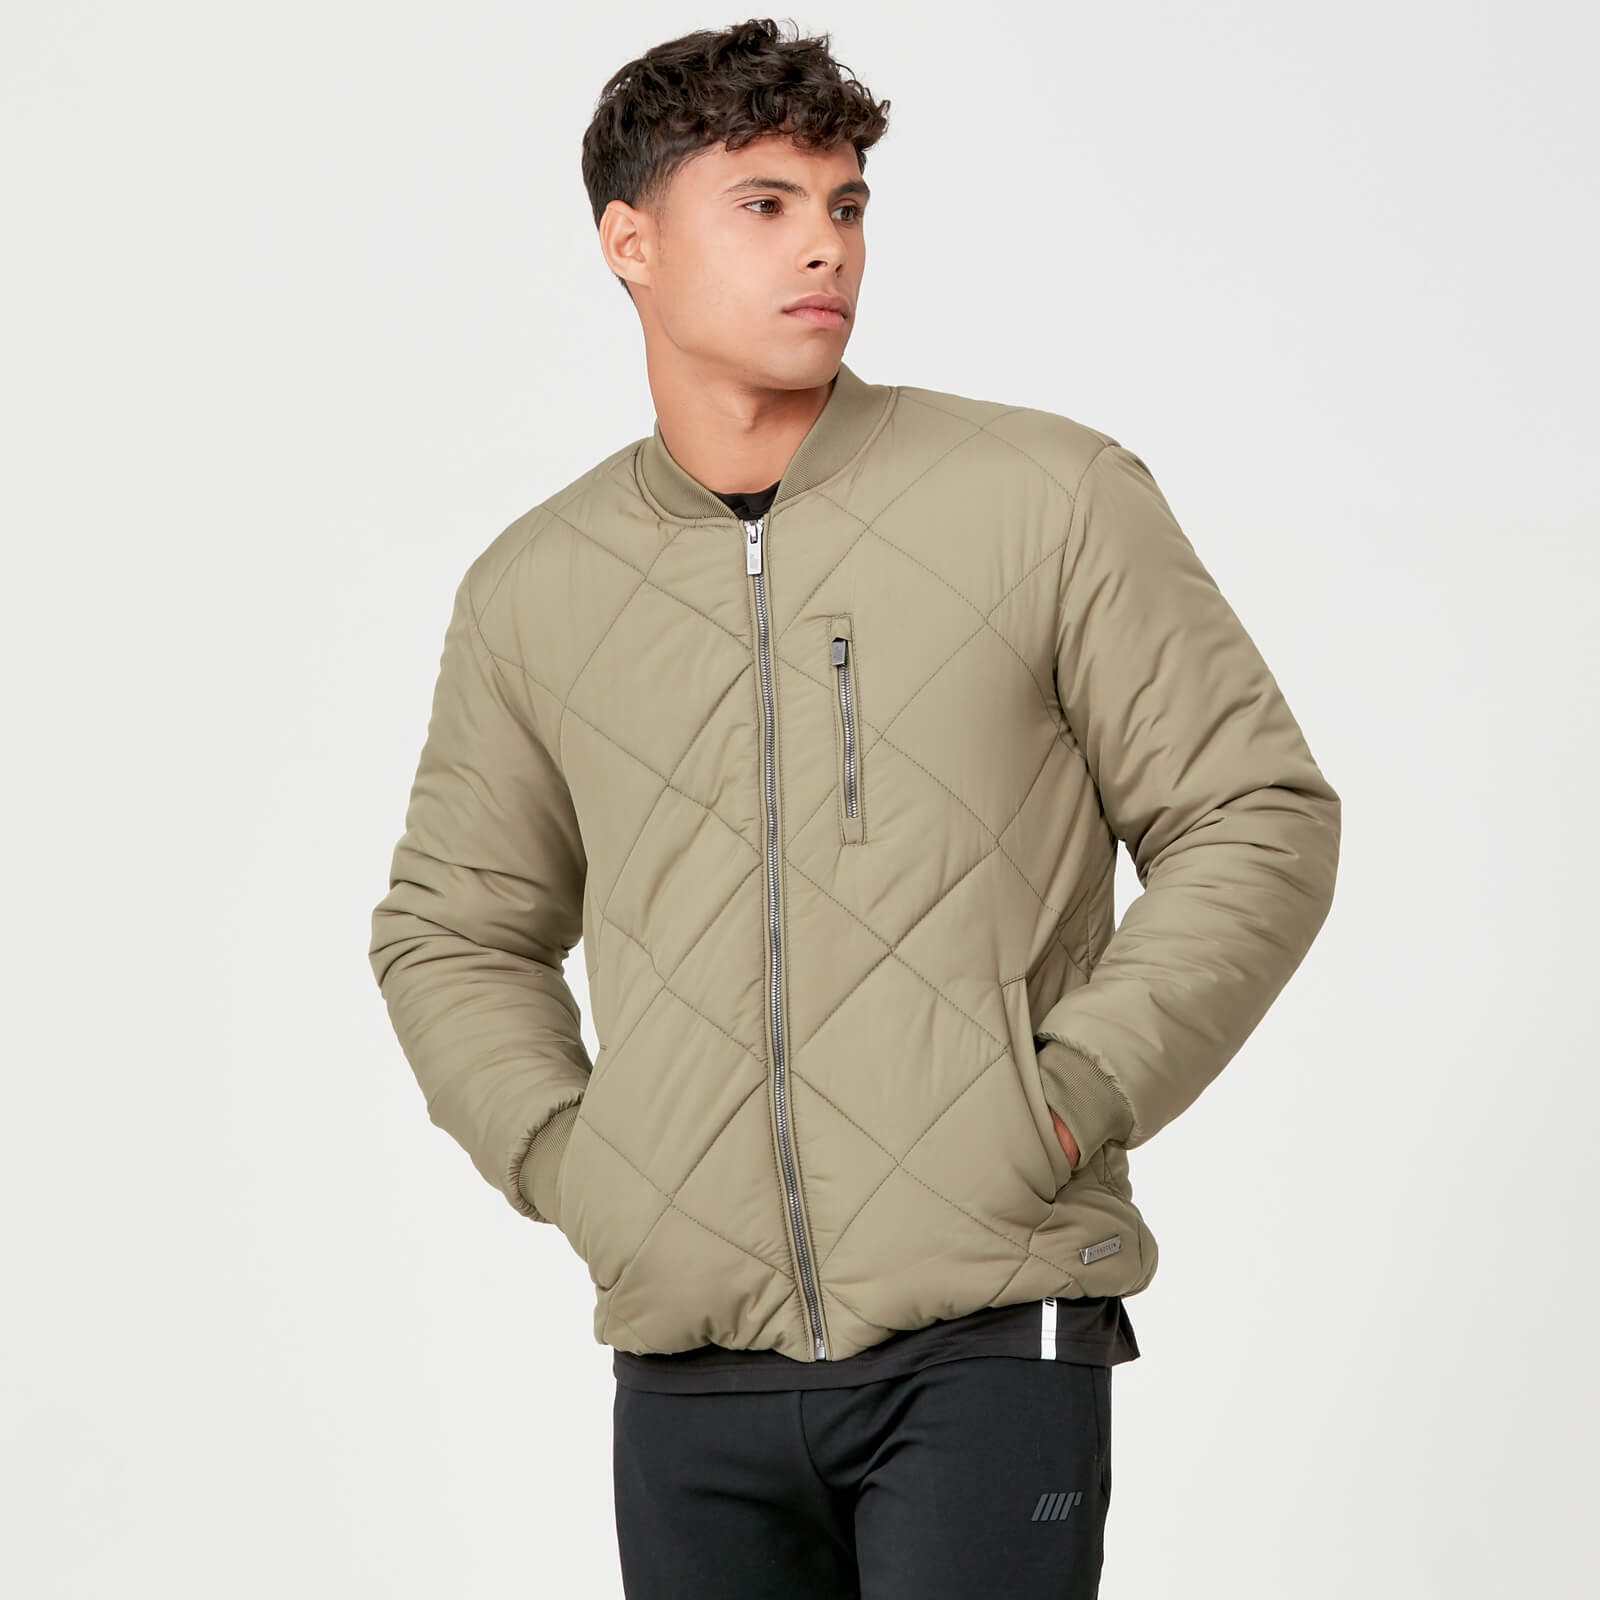 bf78a3d23 Pro-Tech Quilted Bomber Jacket - Light Olive